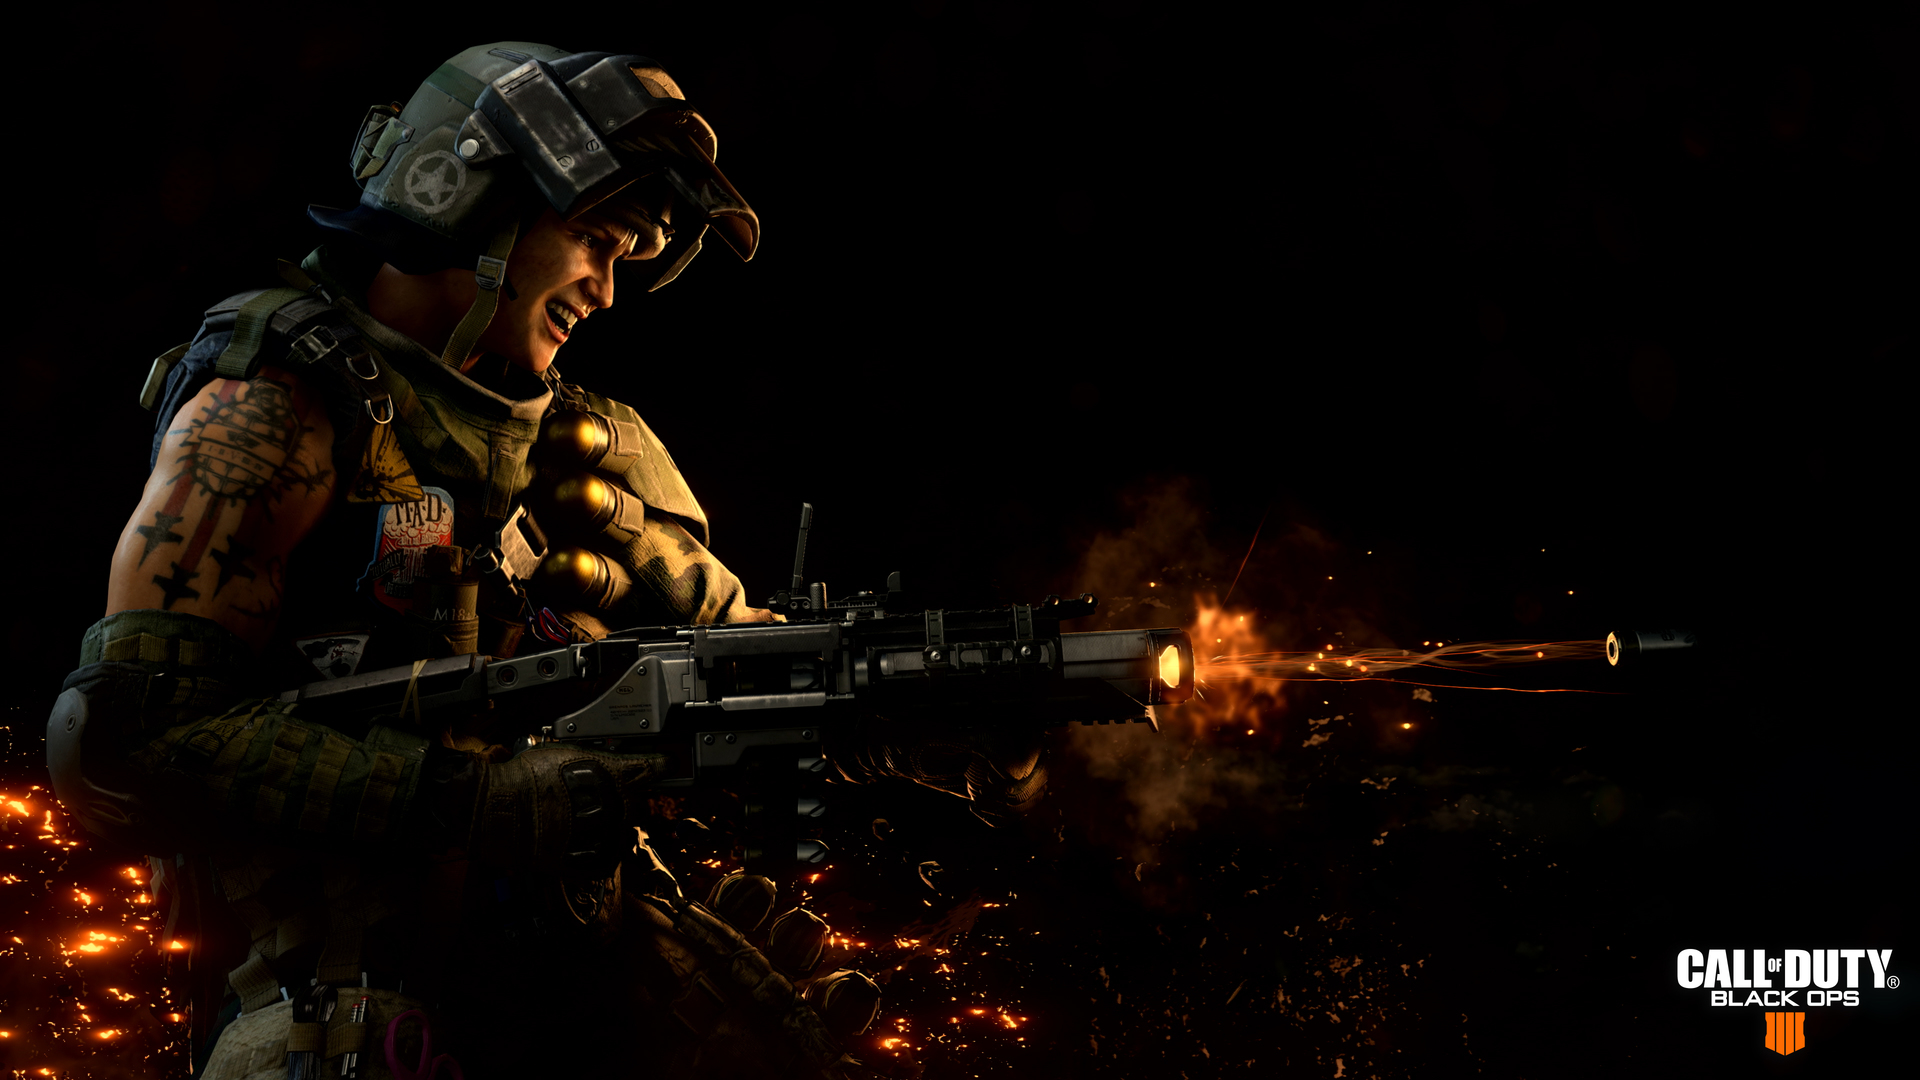 Call Of Duty Black Ops 4 Computer Background Computer Background